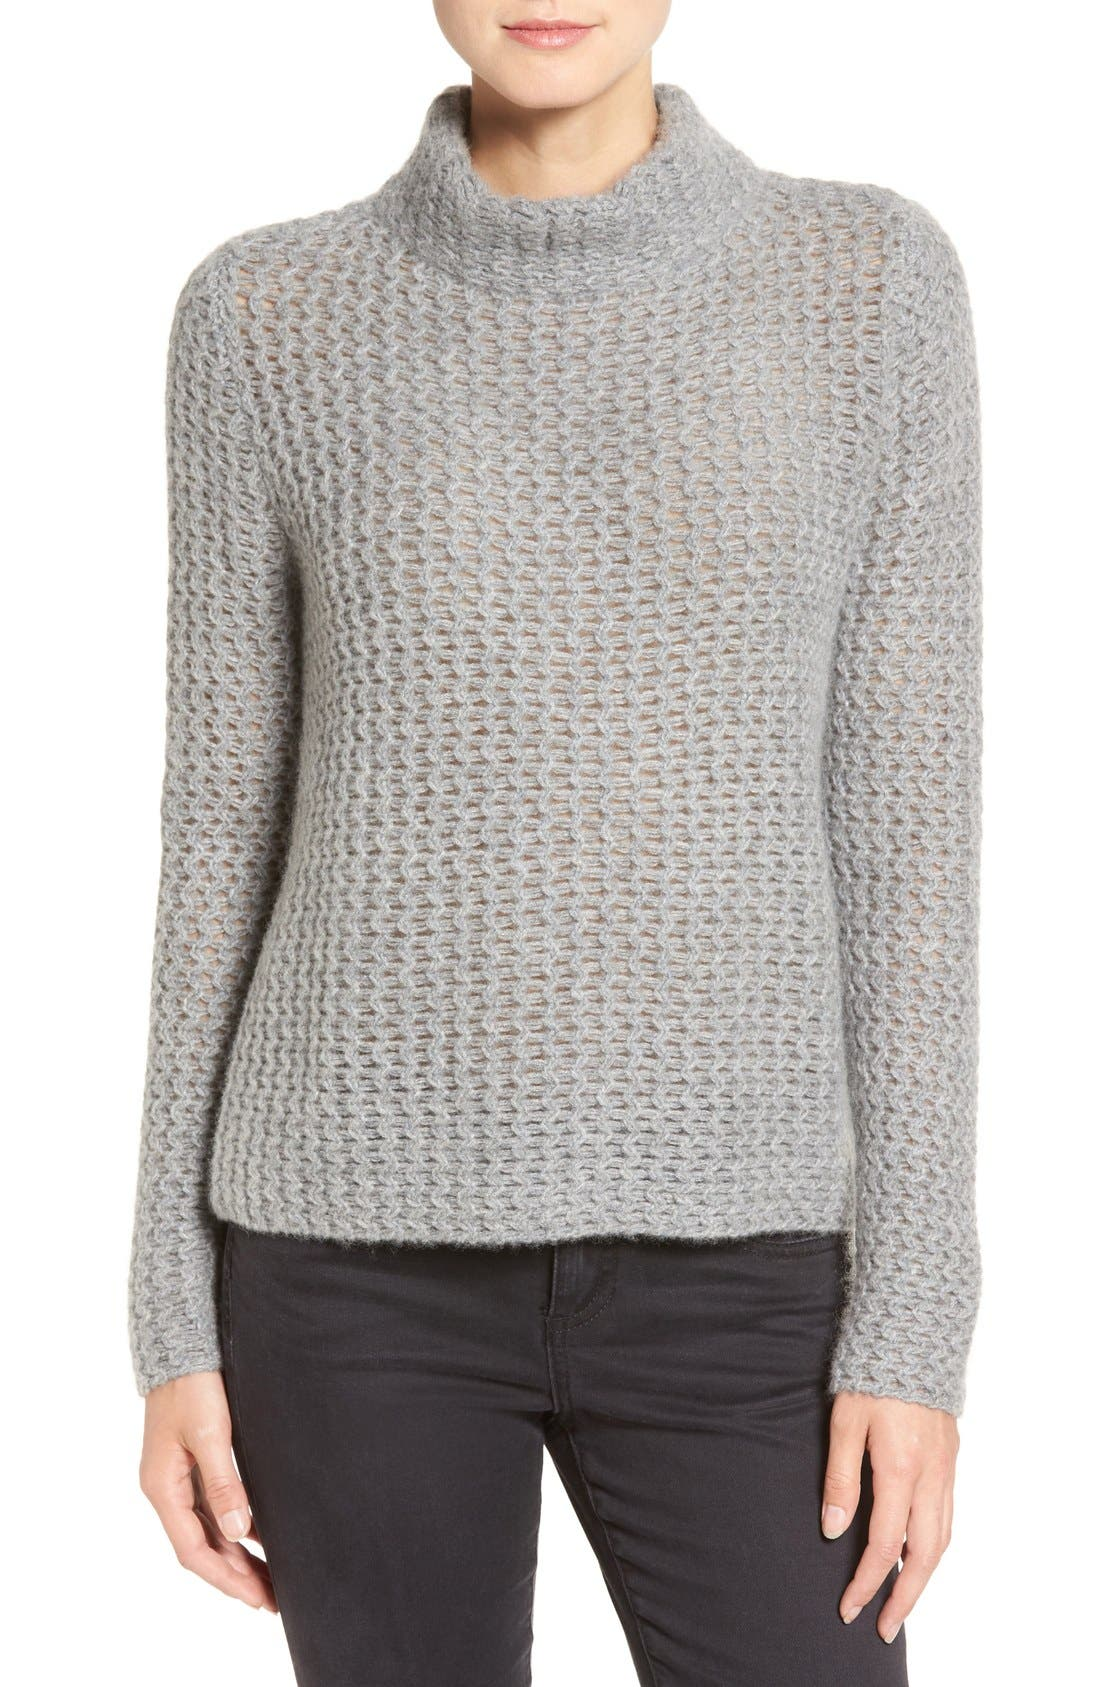 Stitch Detail Cashmere Mock Neck Sweater,                             Main thumbnail 1, color,                             Grey